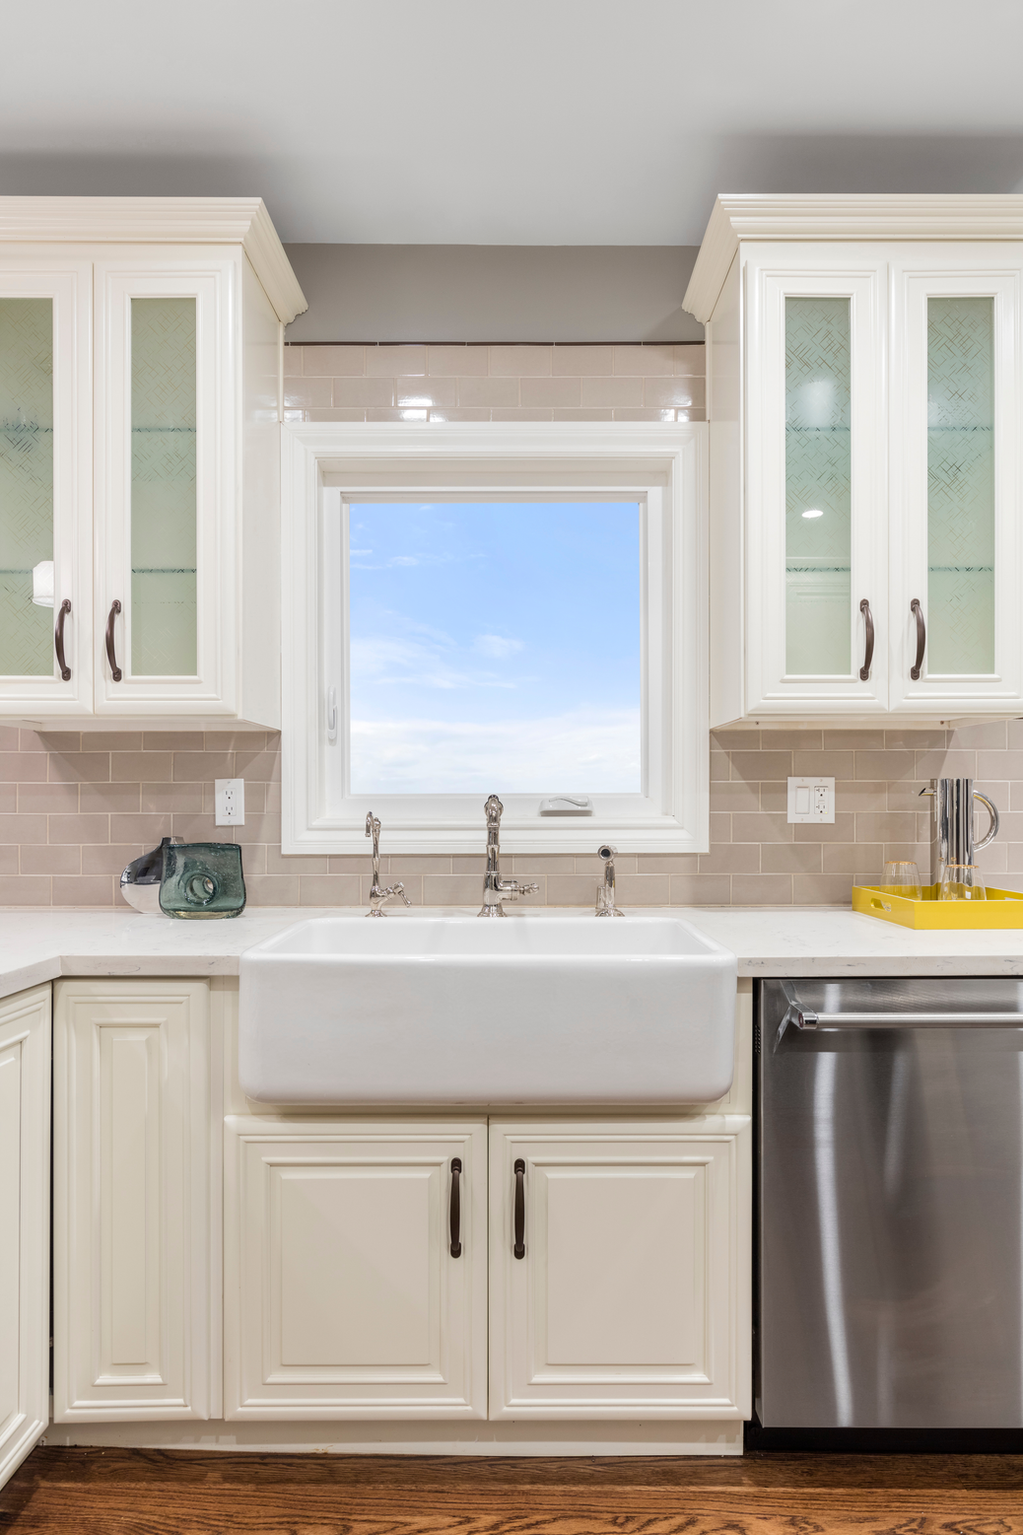 Updating Kitchen Cabinets | San Francisco Bay Area | C3 ...